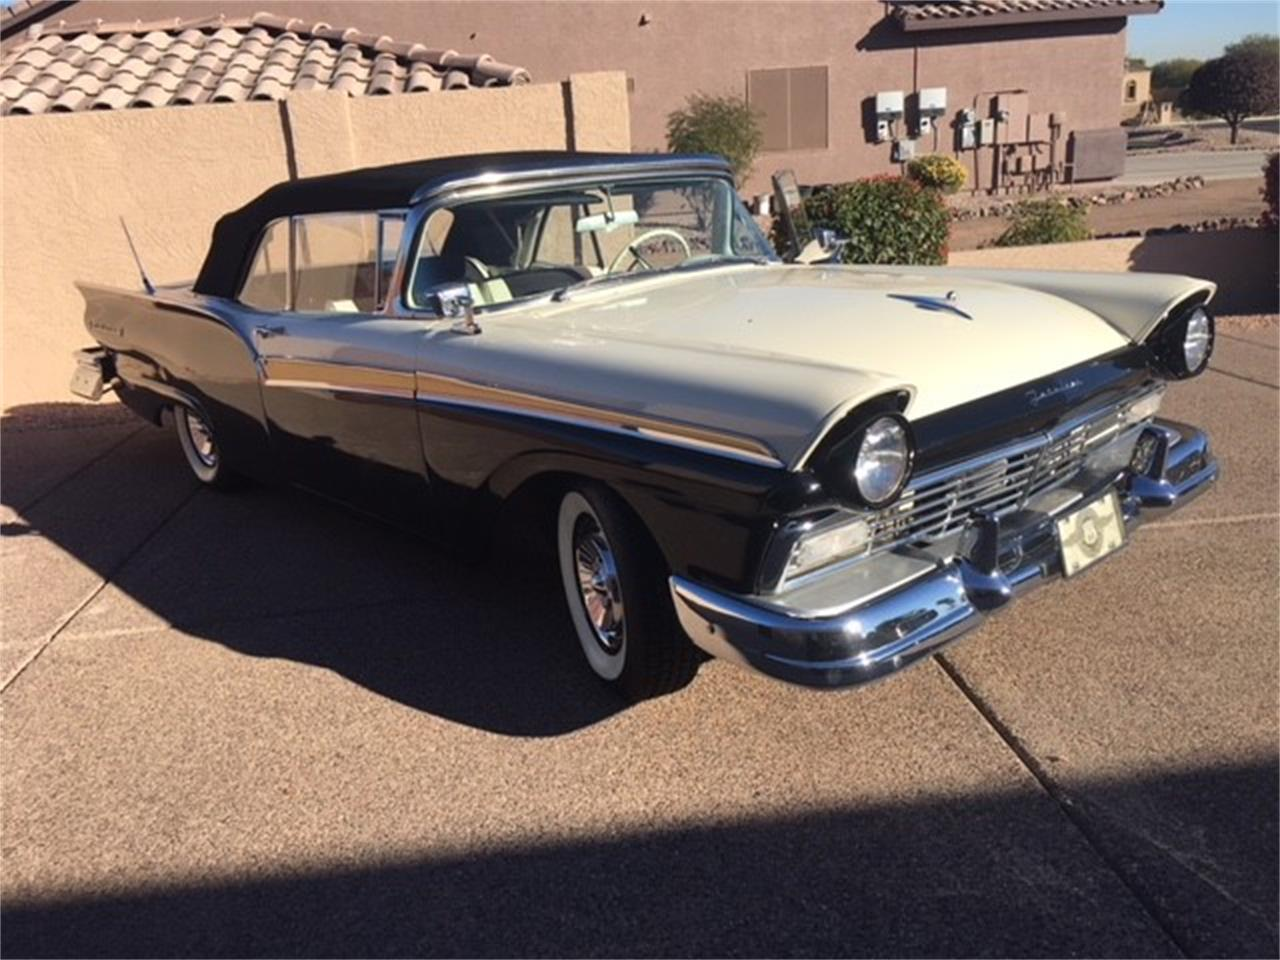 Large Picture of '57 Ford Fairlane 500 Auction Vehicle Offered by Russo and Steele - MO8W